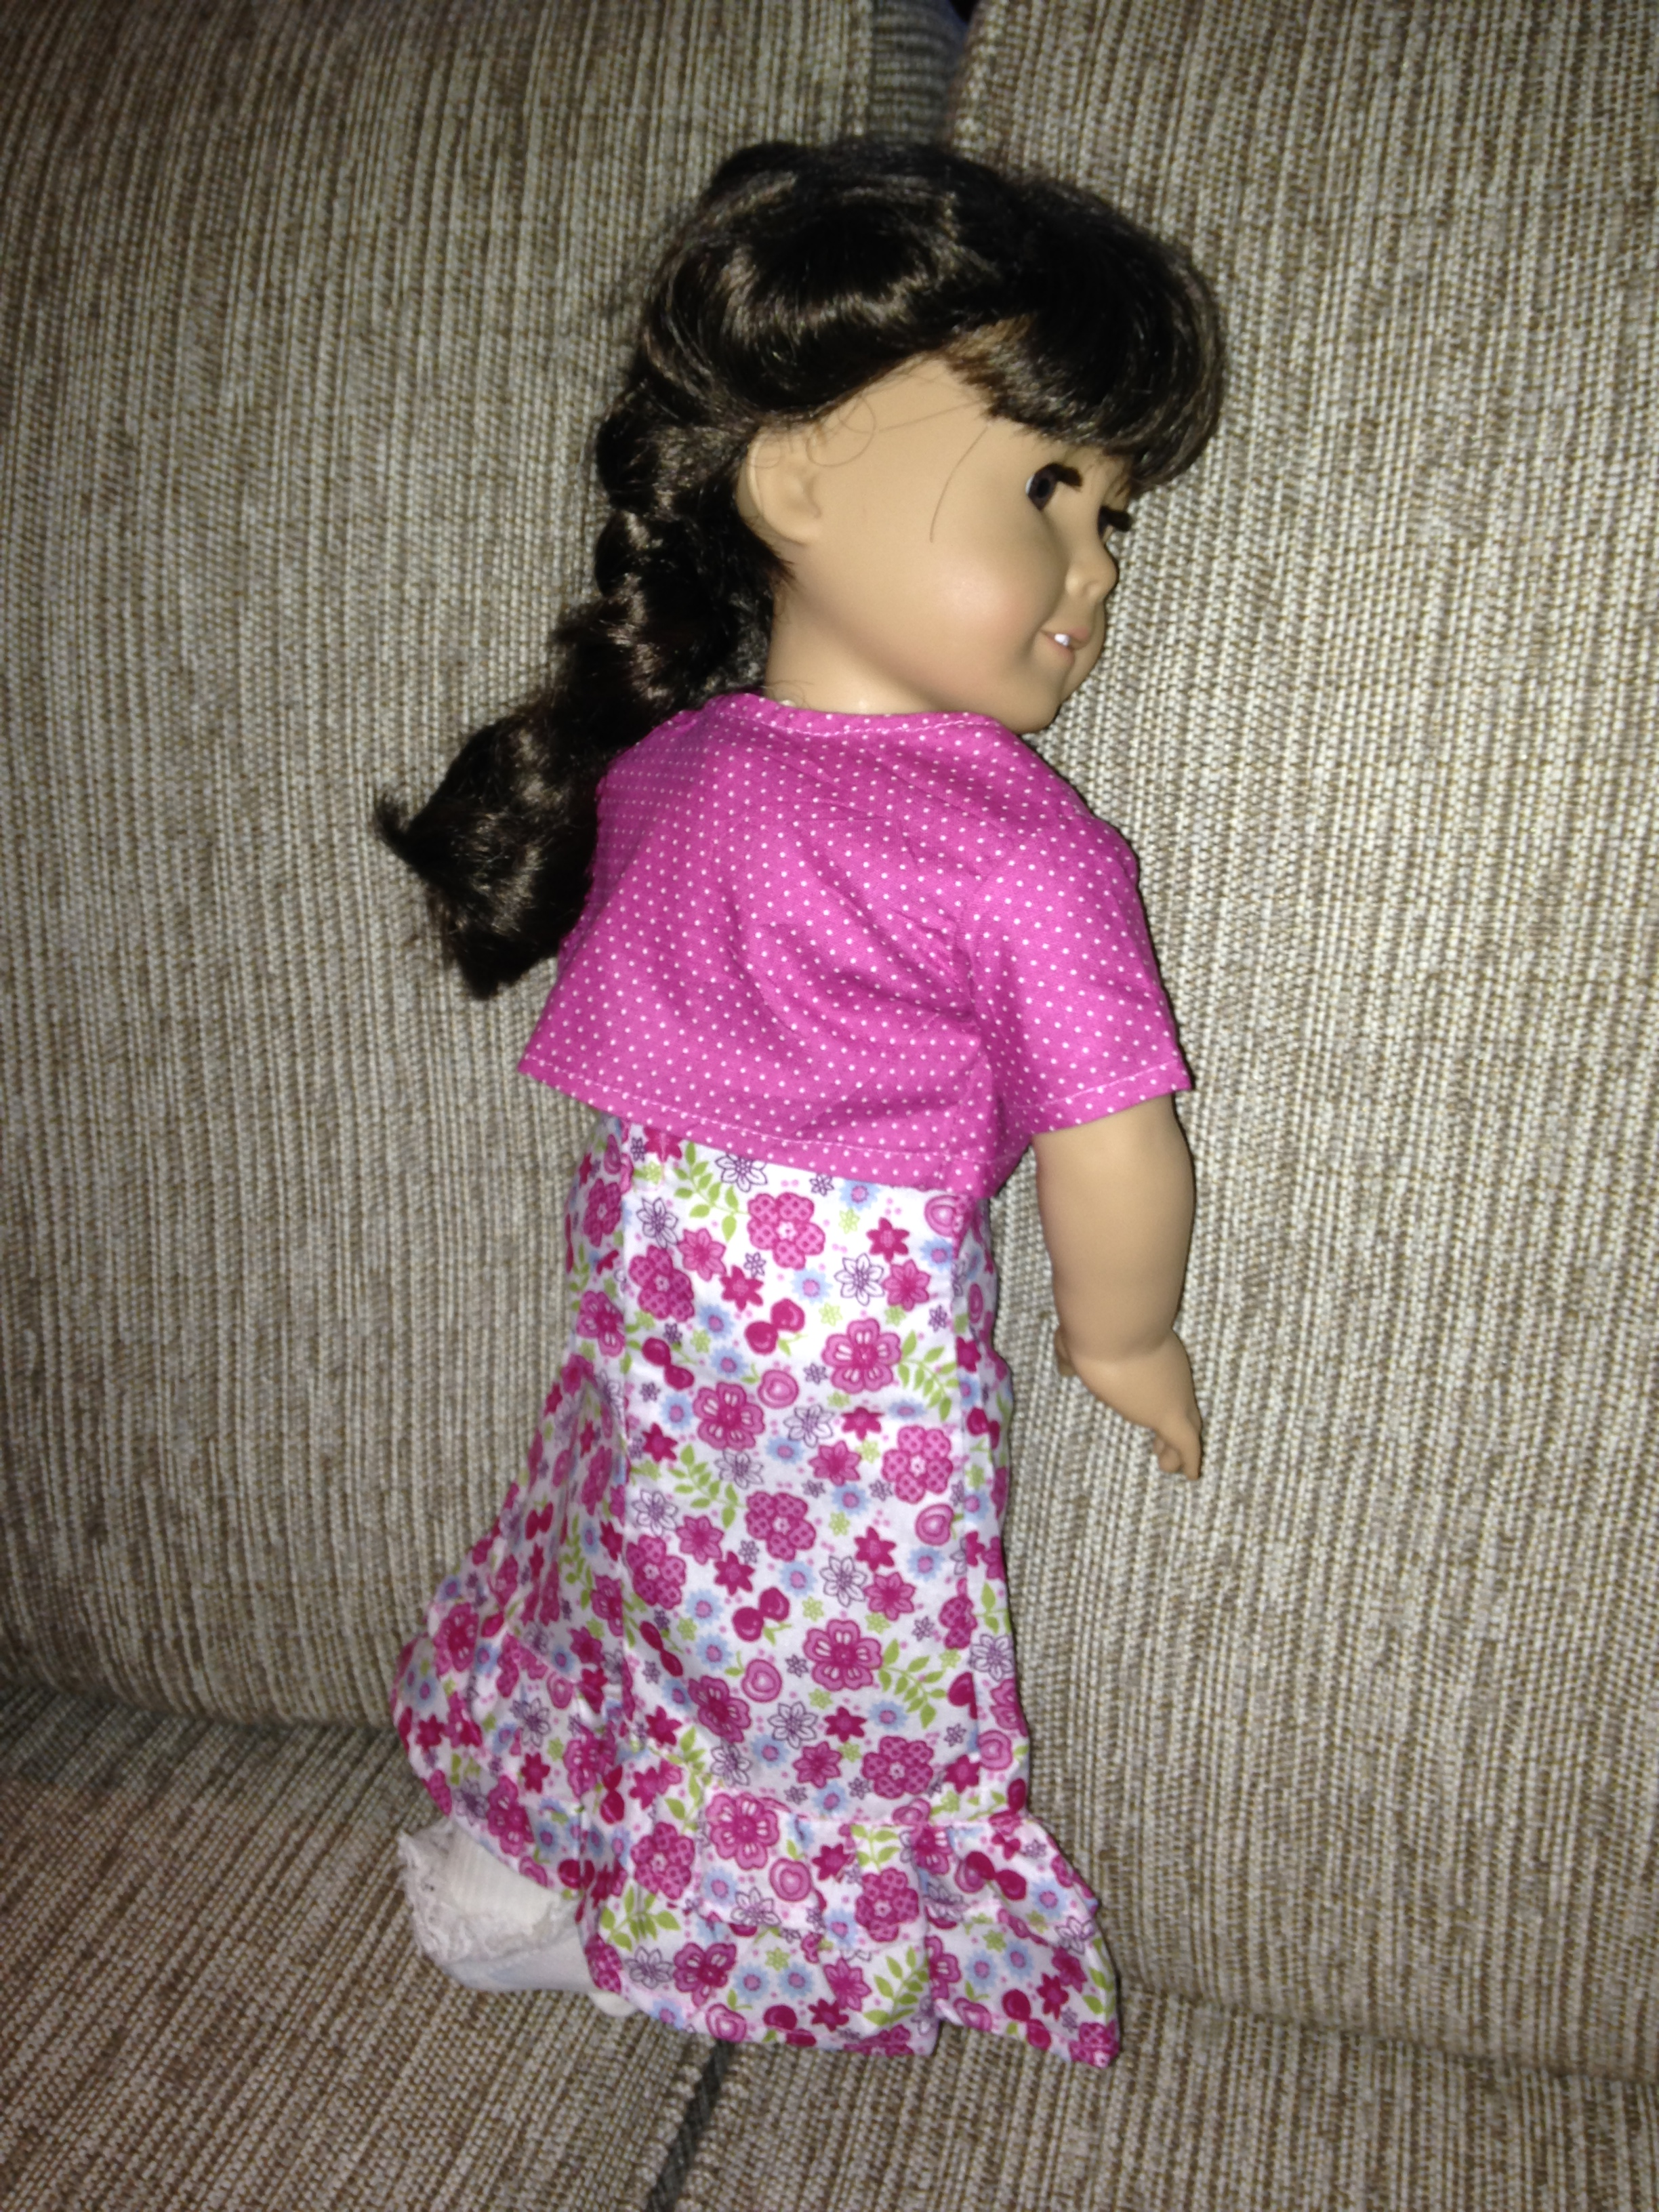 Doll Clothes Superstore Review: American Girl!